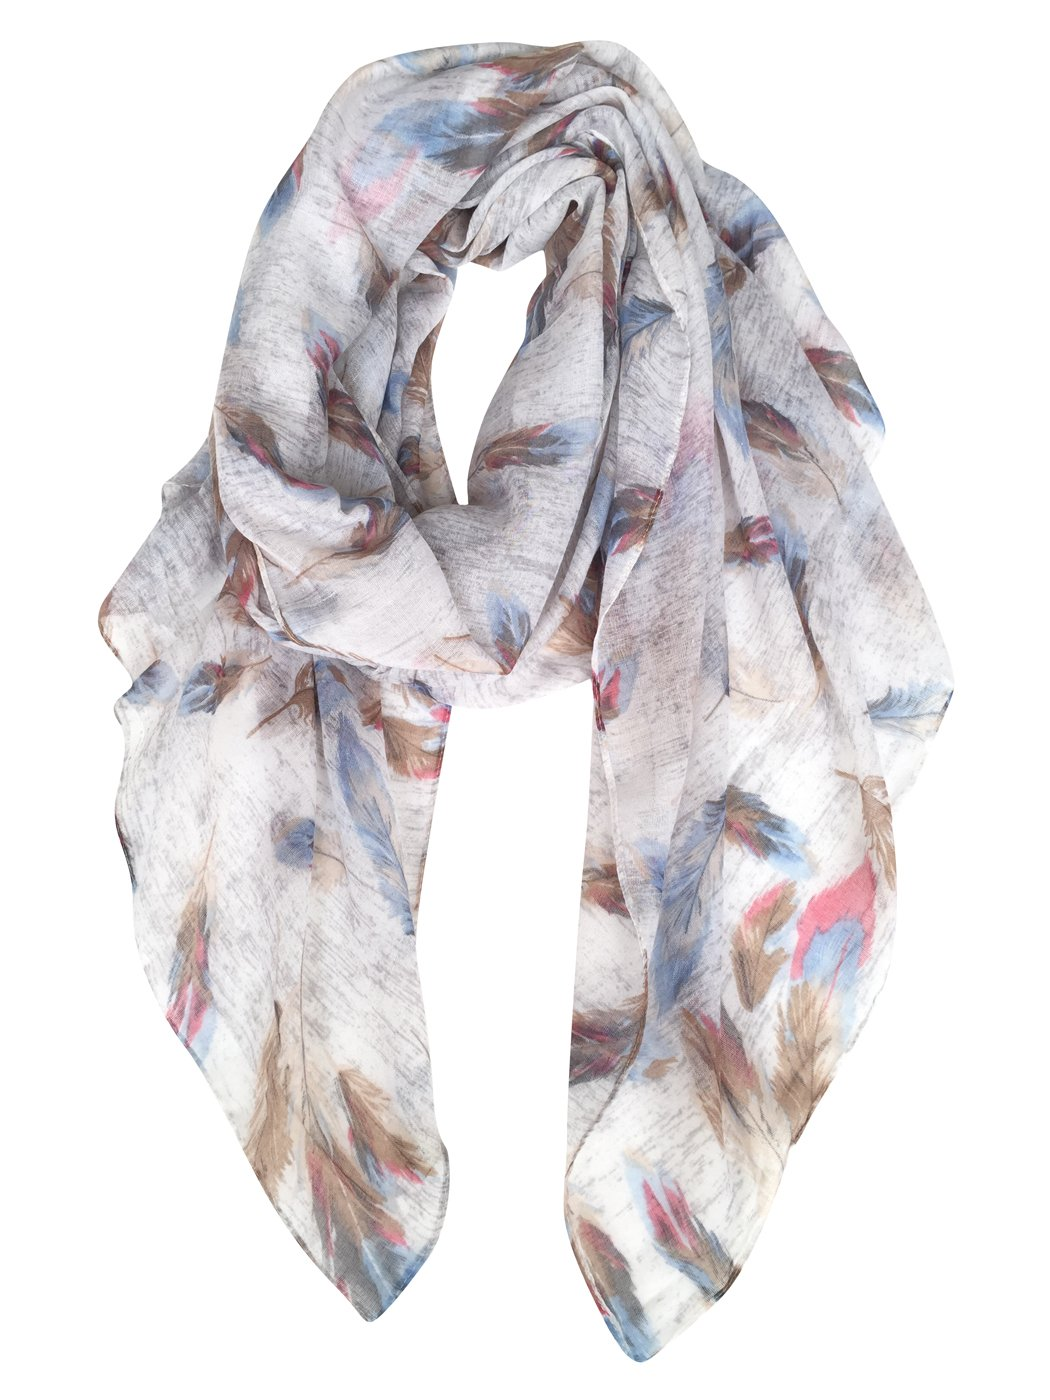 GERINLY Scarf Wrap - Colorful Feathers Print Shawls Womens Soft Warm Scarves (Light Grey)